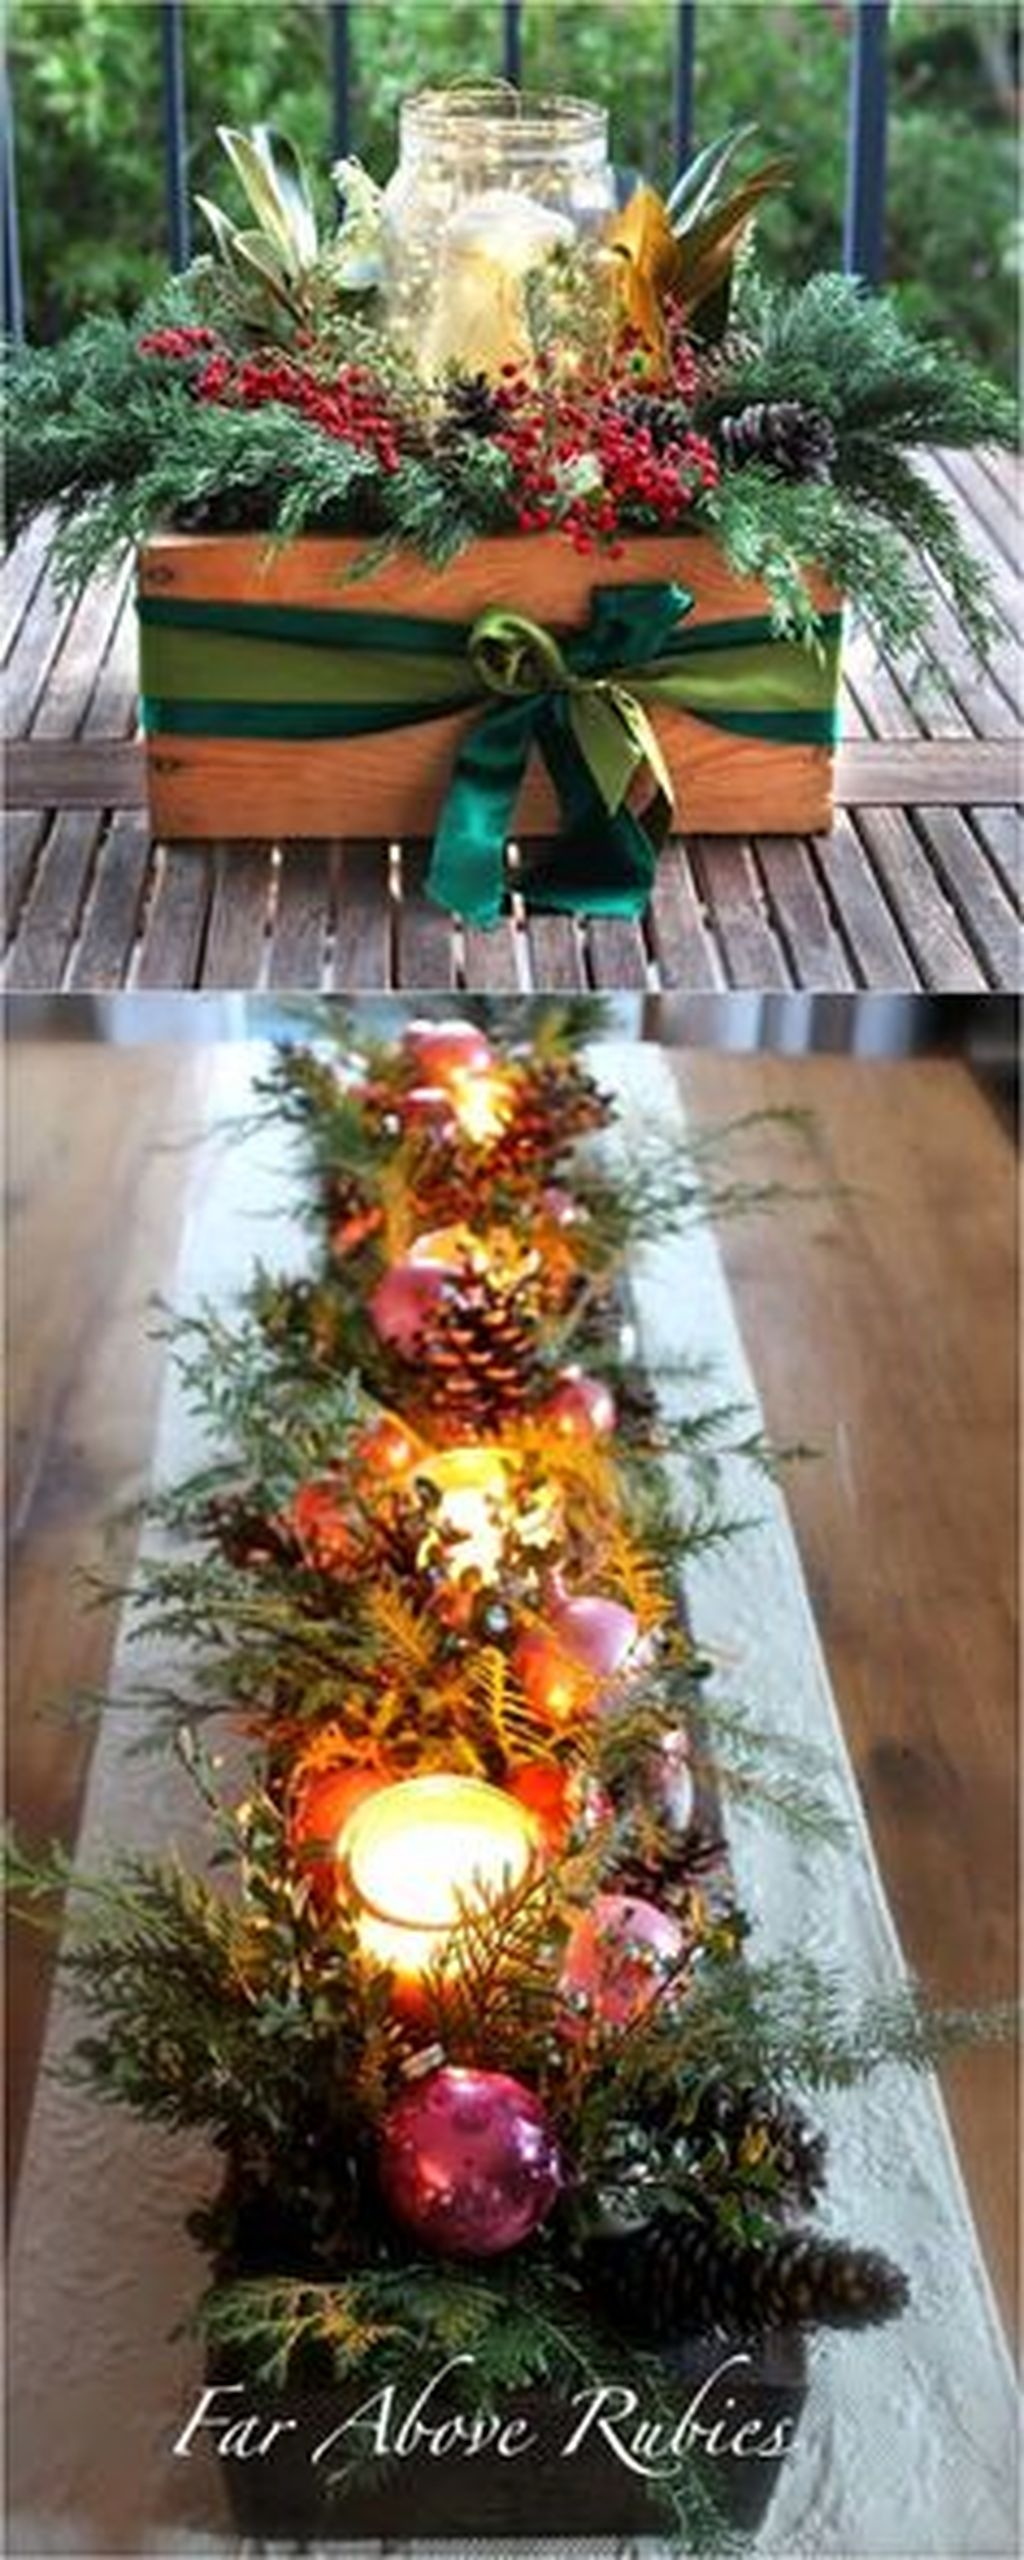 Simple And Easy Christmas Centerpieces Ideas31